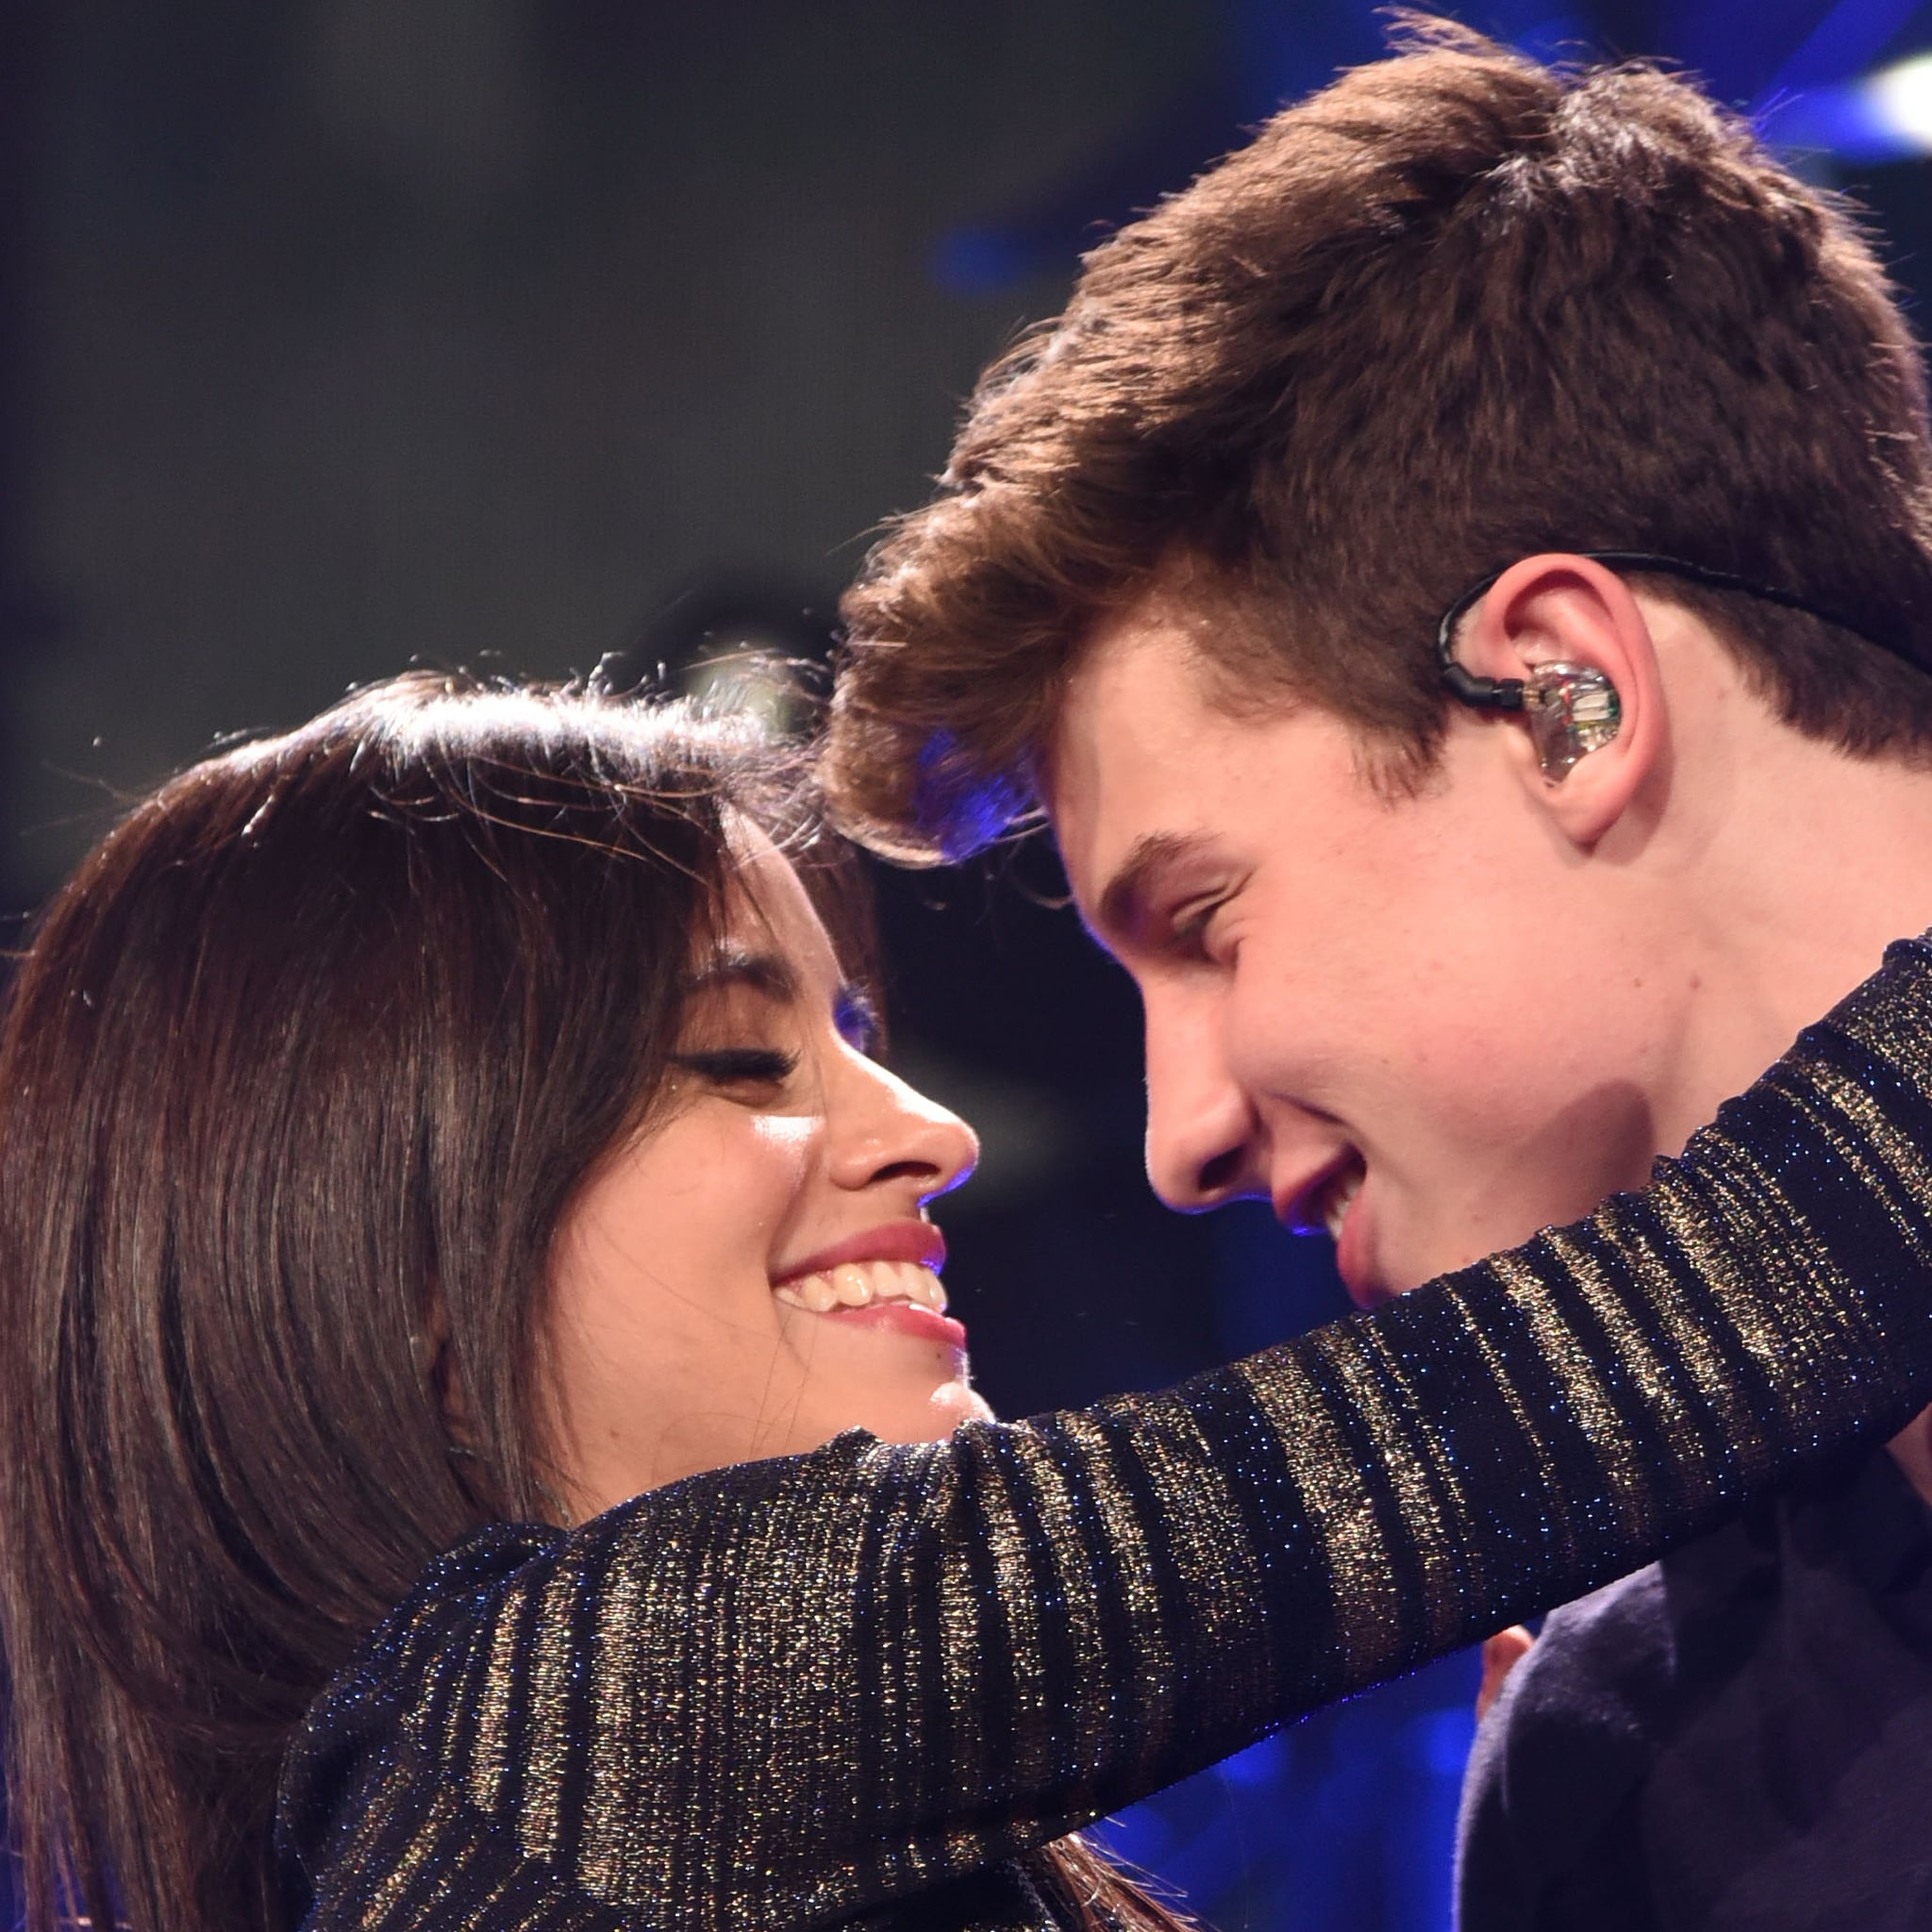 Camilla Cabello and Shawn Mended major PDA during the brunch